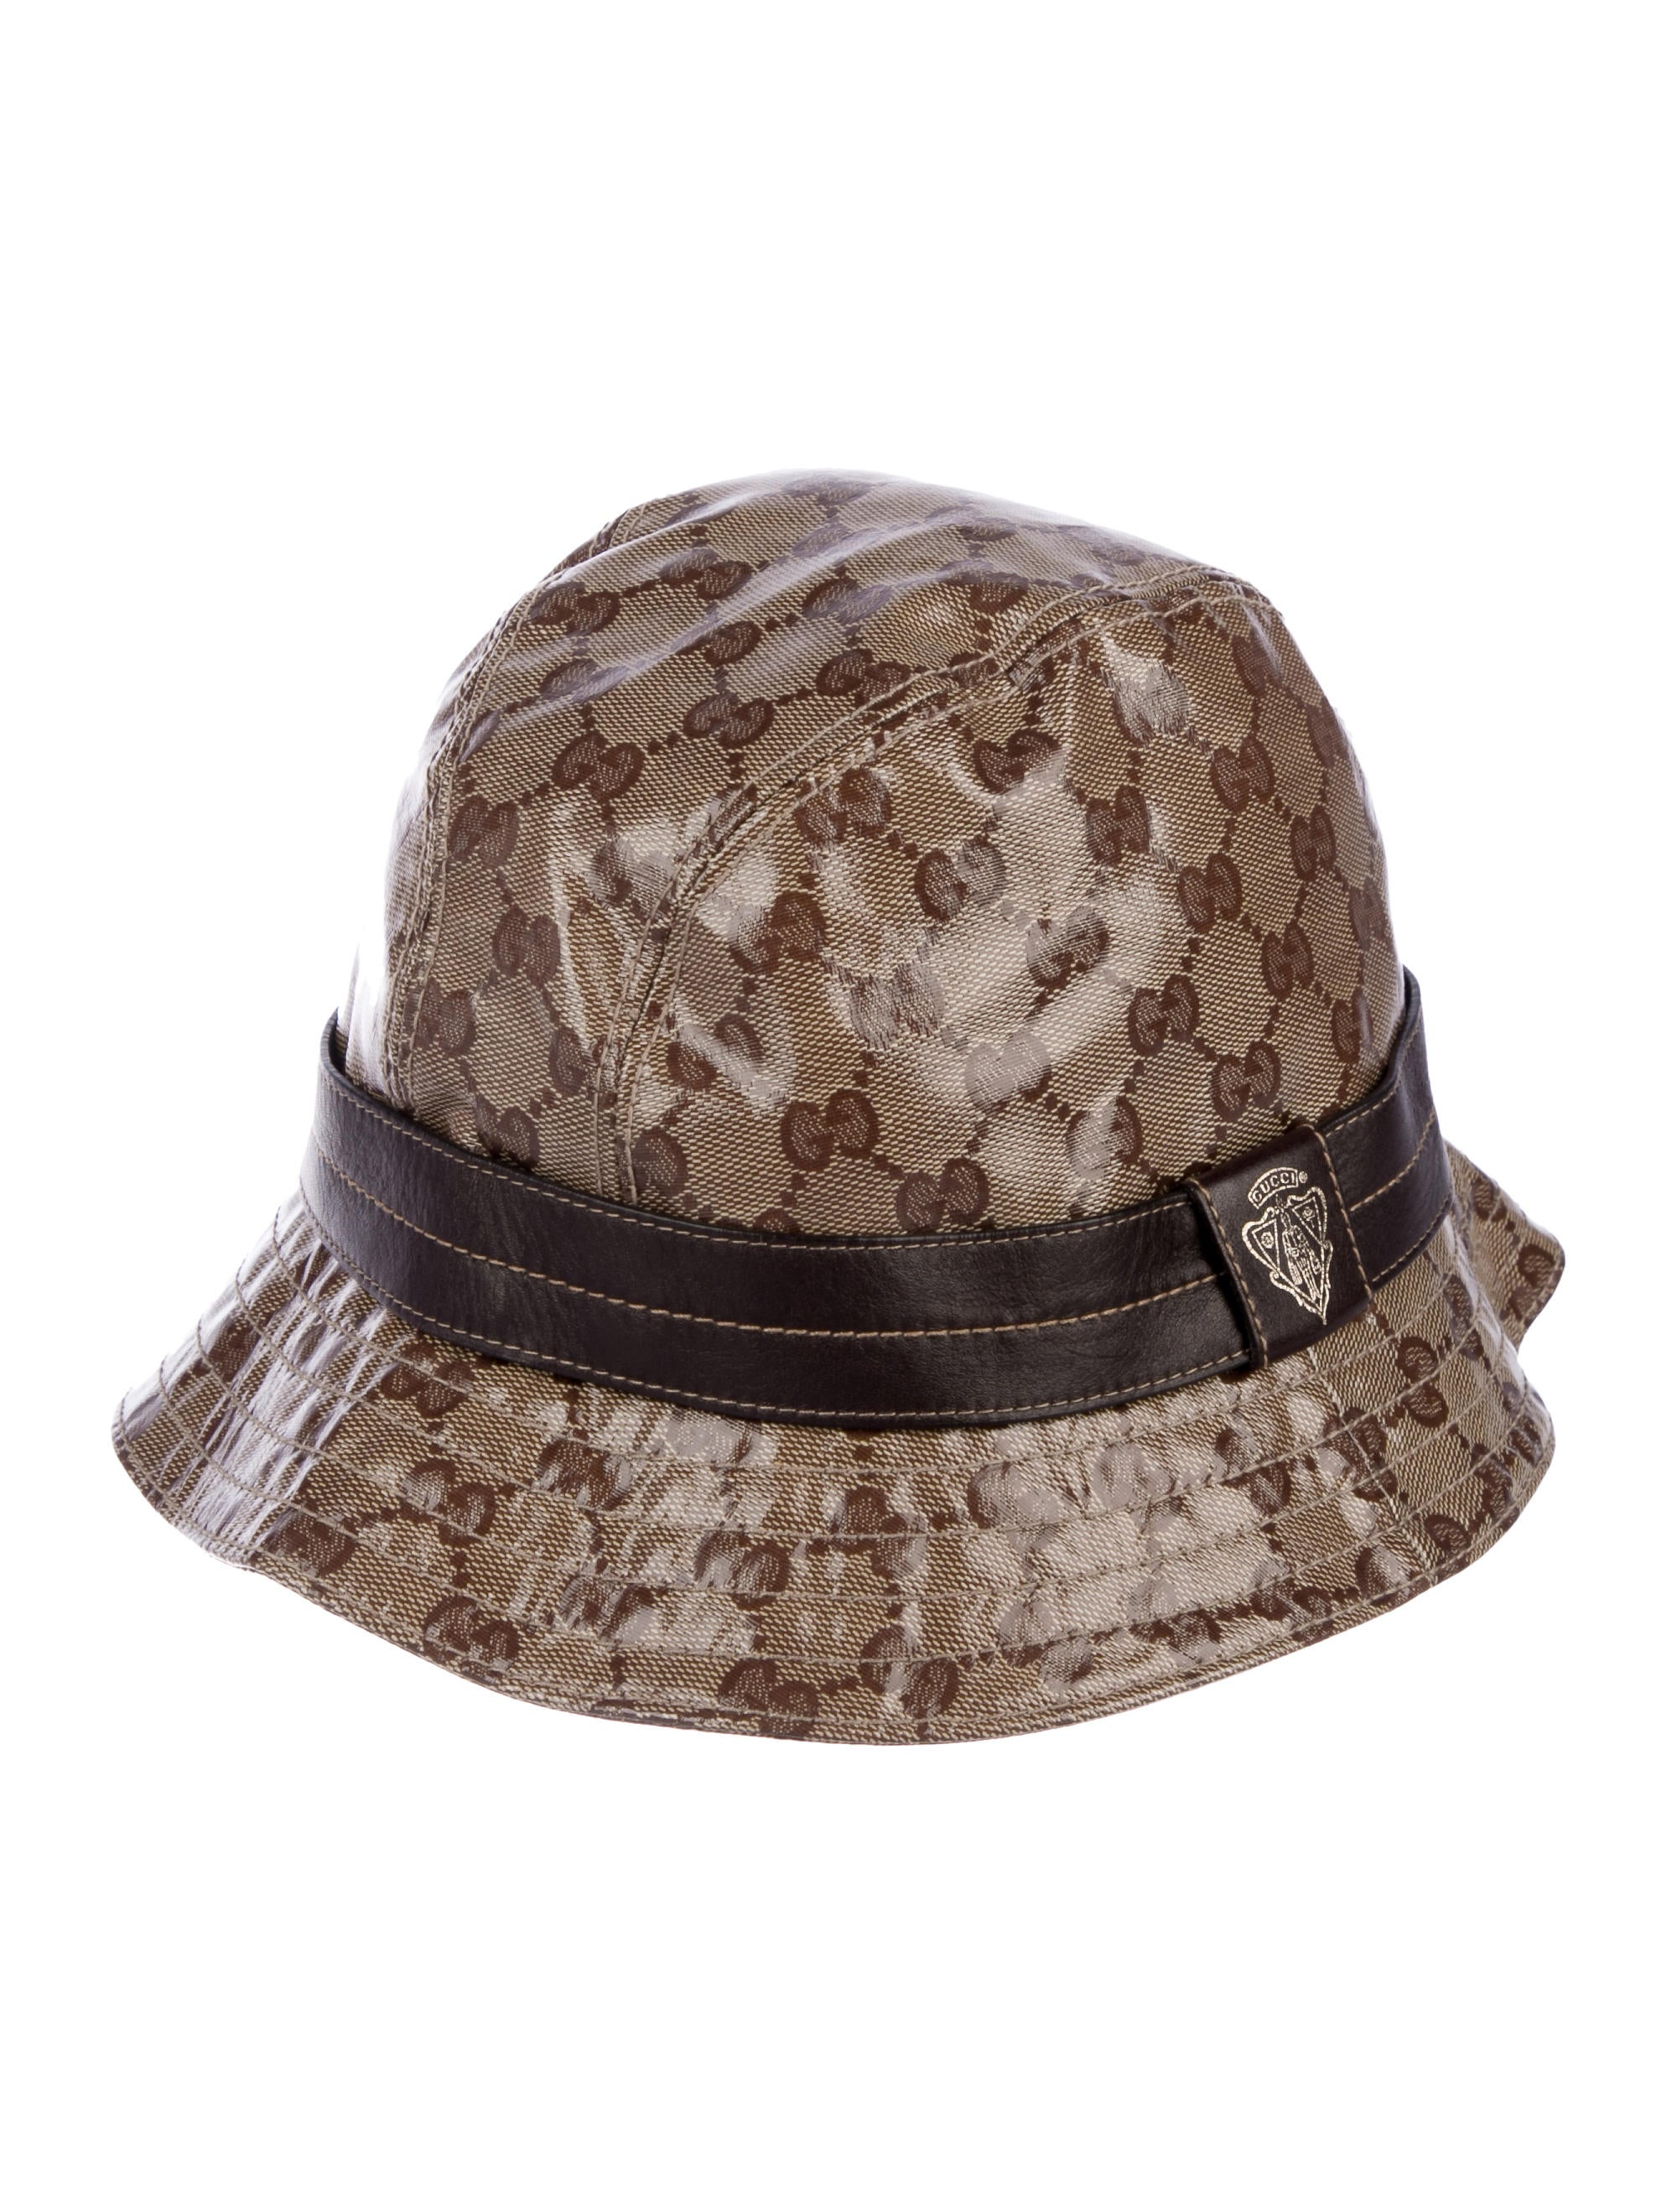 gucci fedora donna hat do not buy pls various styles best